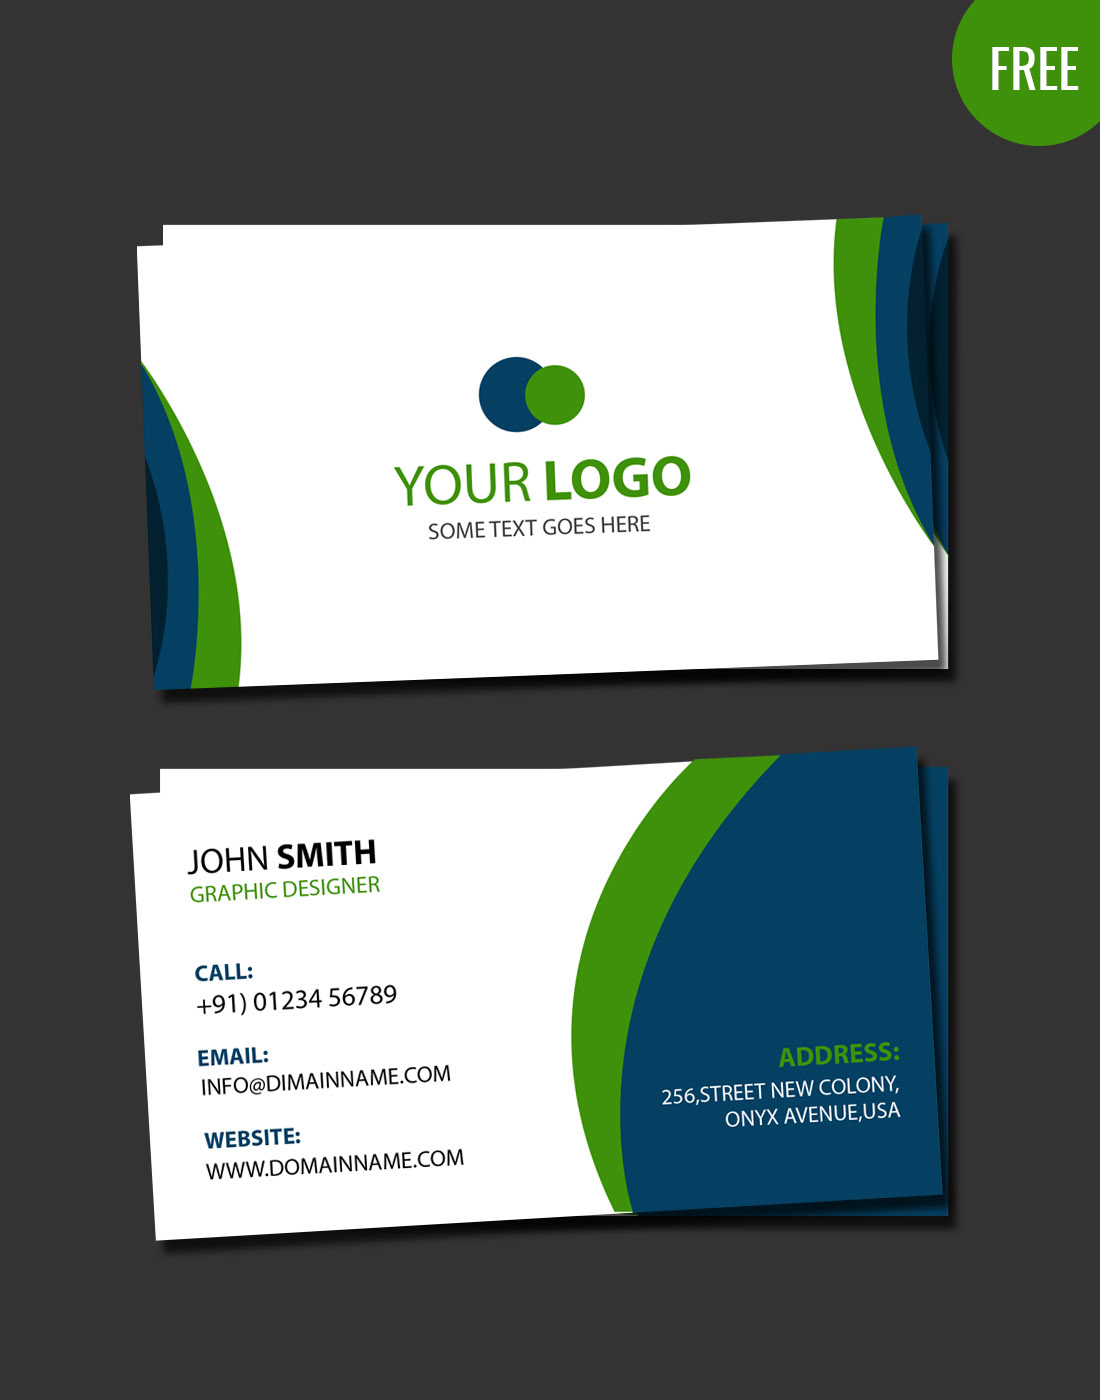 BUSINESS CARD PSD TEMPLATE